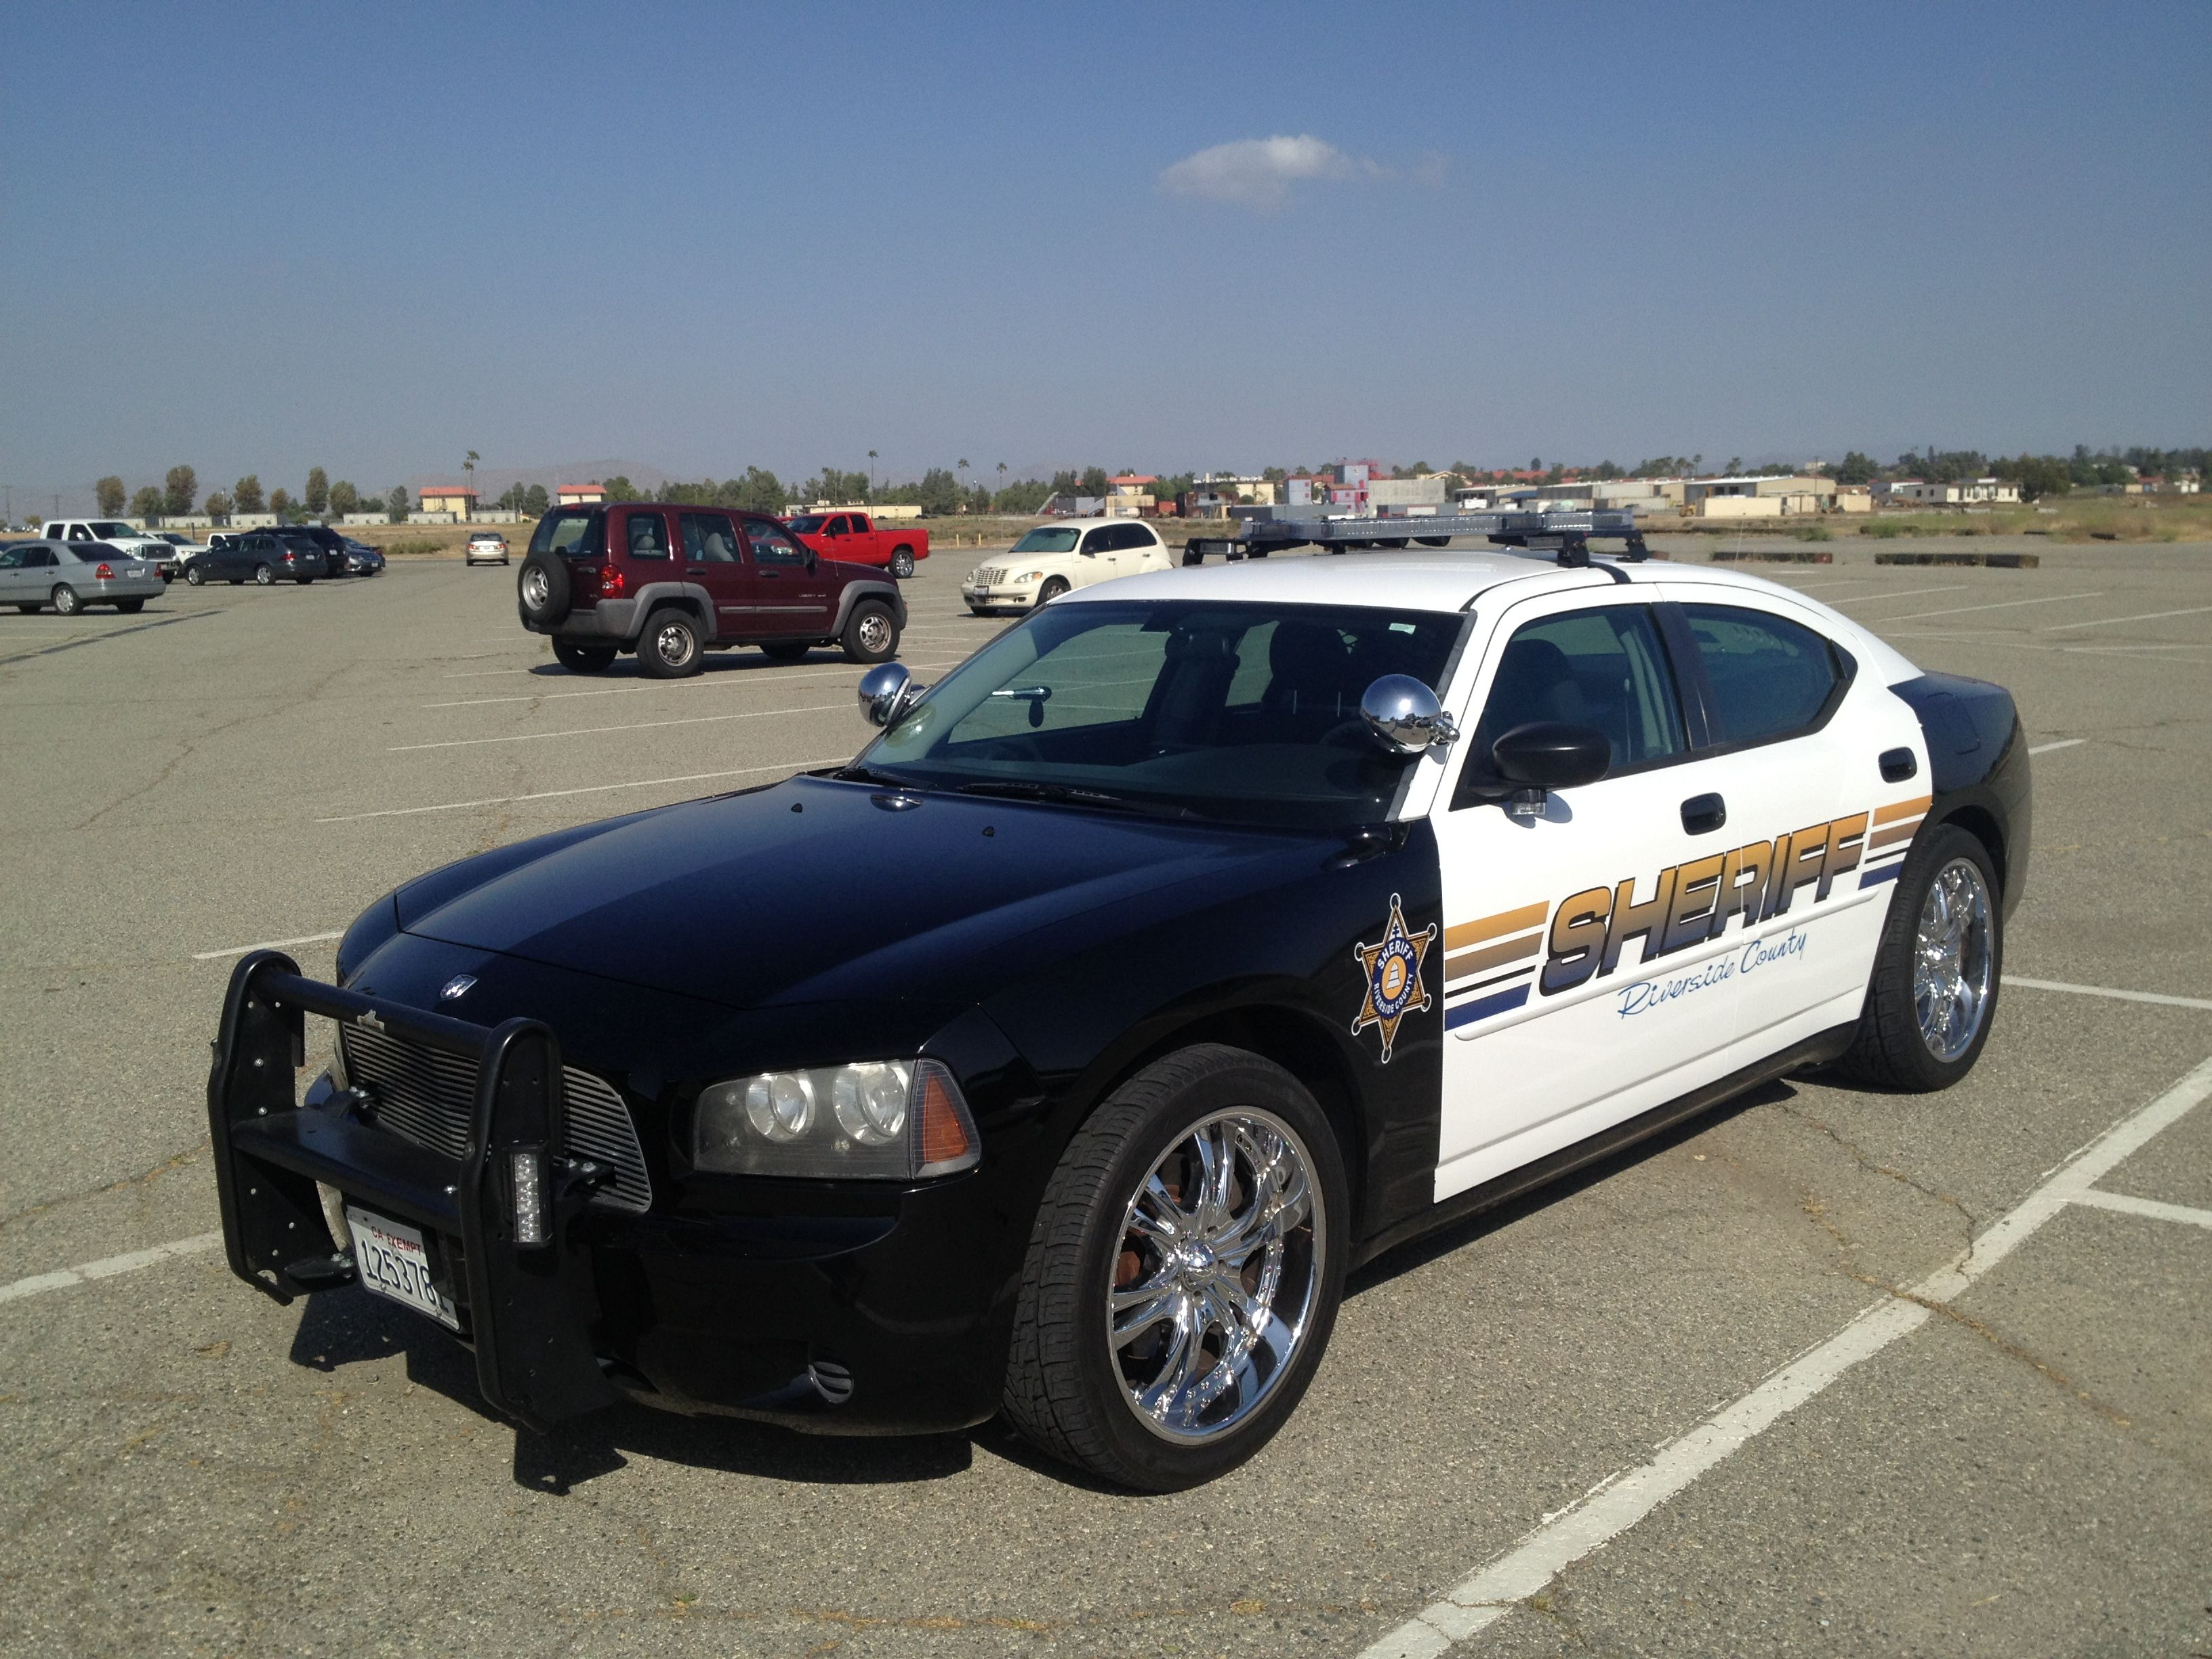 Riverside Sheriff Dodge Charger 2013 | Police Car Photos ...